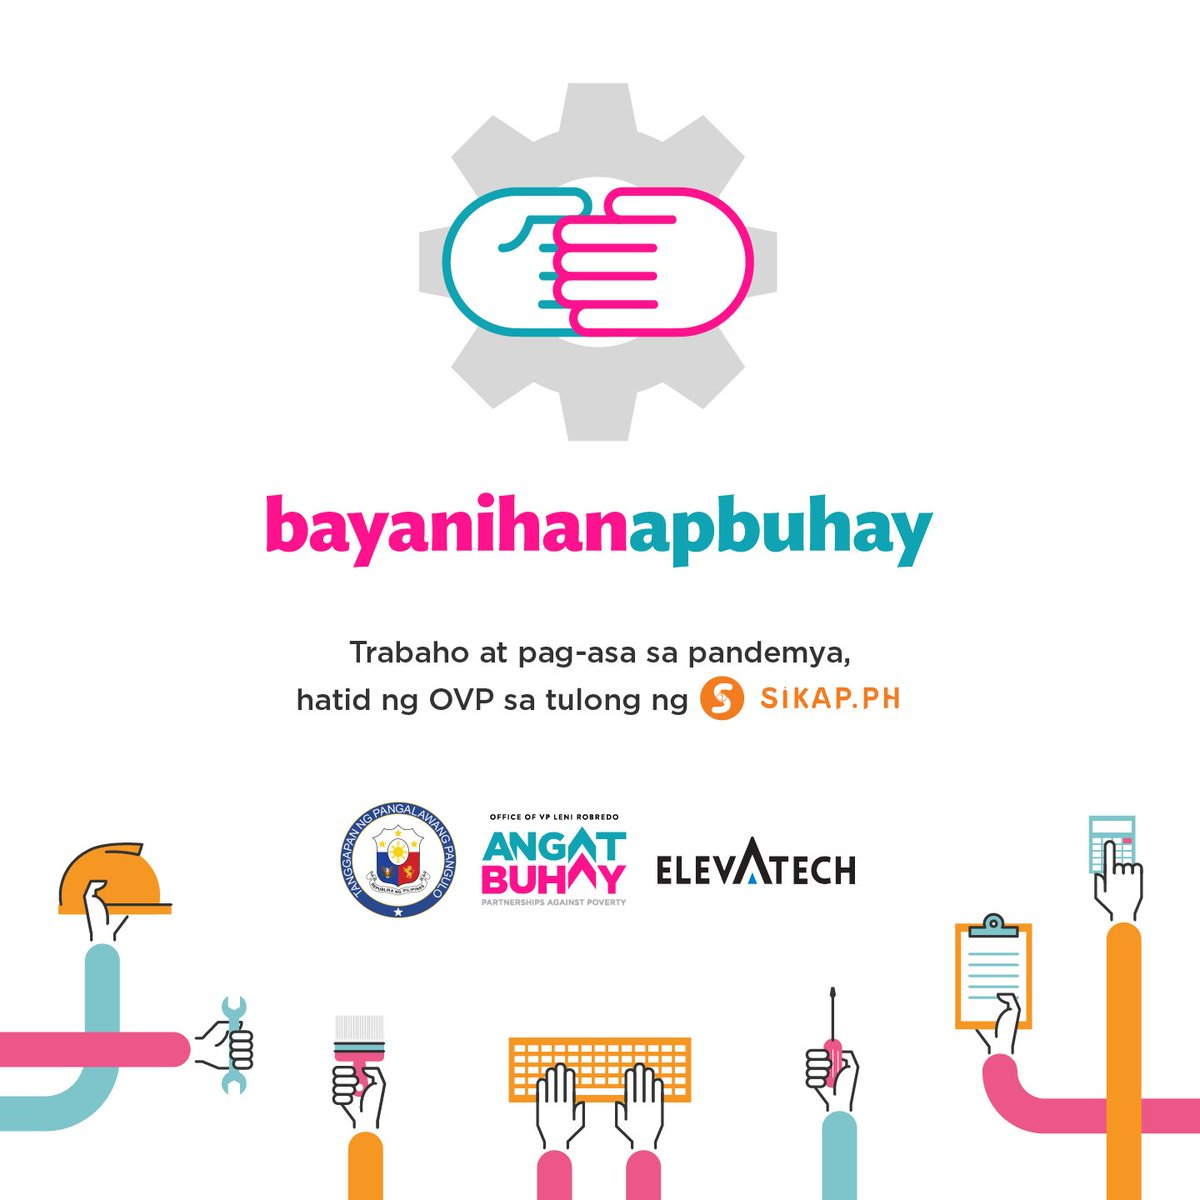 Today, we are launching our new initiative, BAYANIHANAPBUHAY—our response to help those who lost their jobs amid this crisis.  We have partnered with https://t.co/8wTLqDZmgx to put up a platform, which those who need jobs and those who need workers can use free of charge. https://t.co/WTQR91AoUT